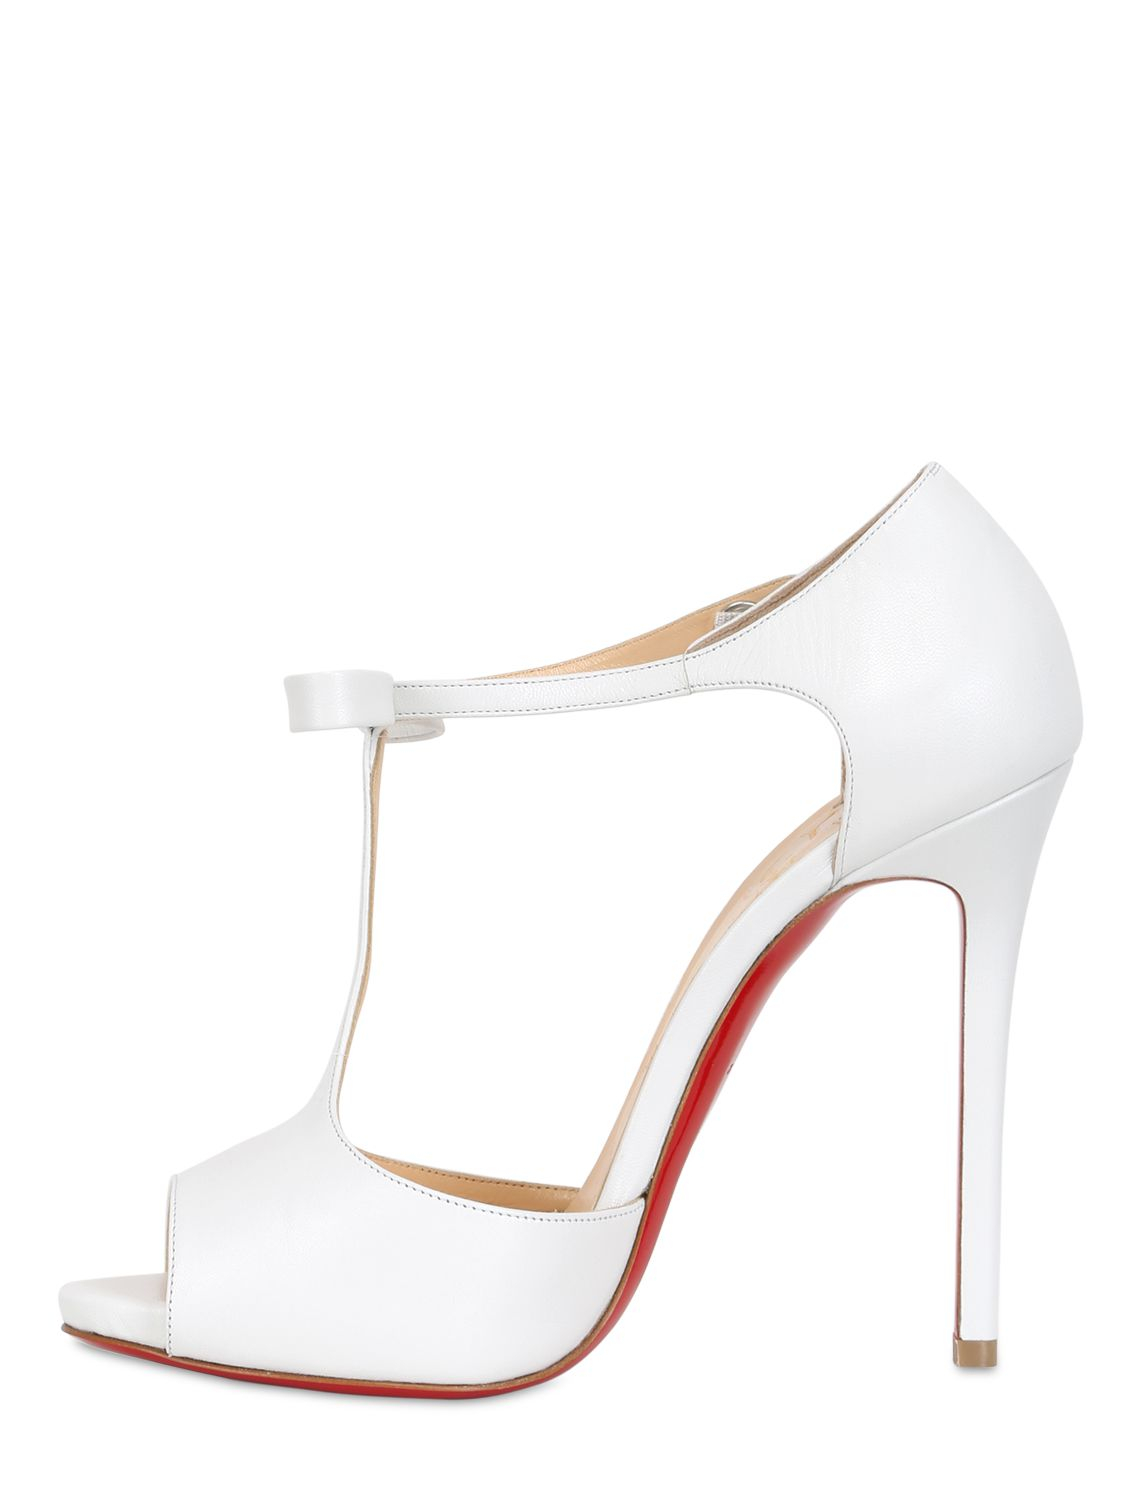 50b3455e826 Christian Louboutin White 120mm Belly Nodo Leather Open Toe Pumps